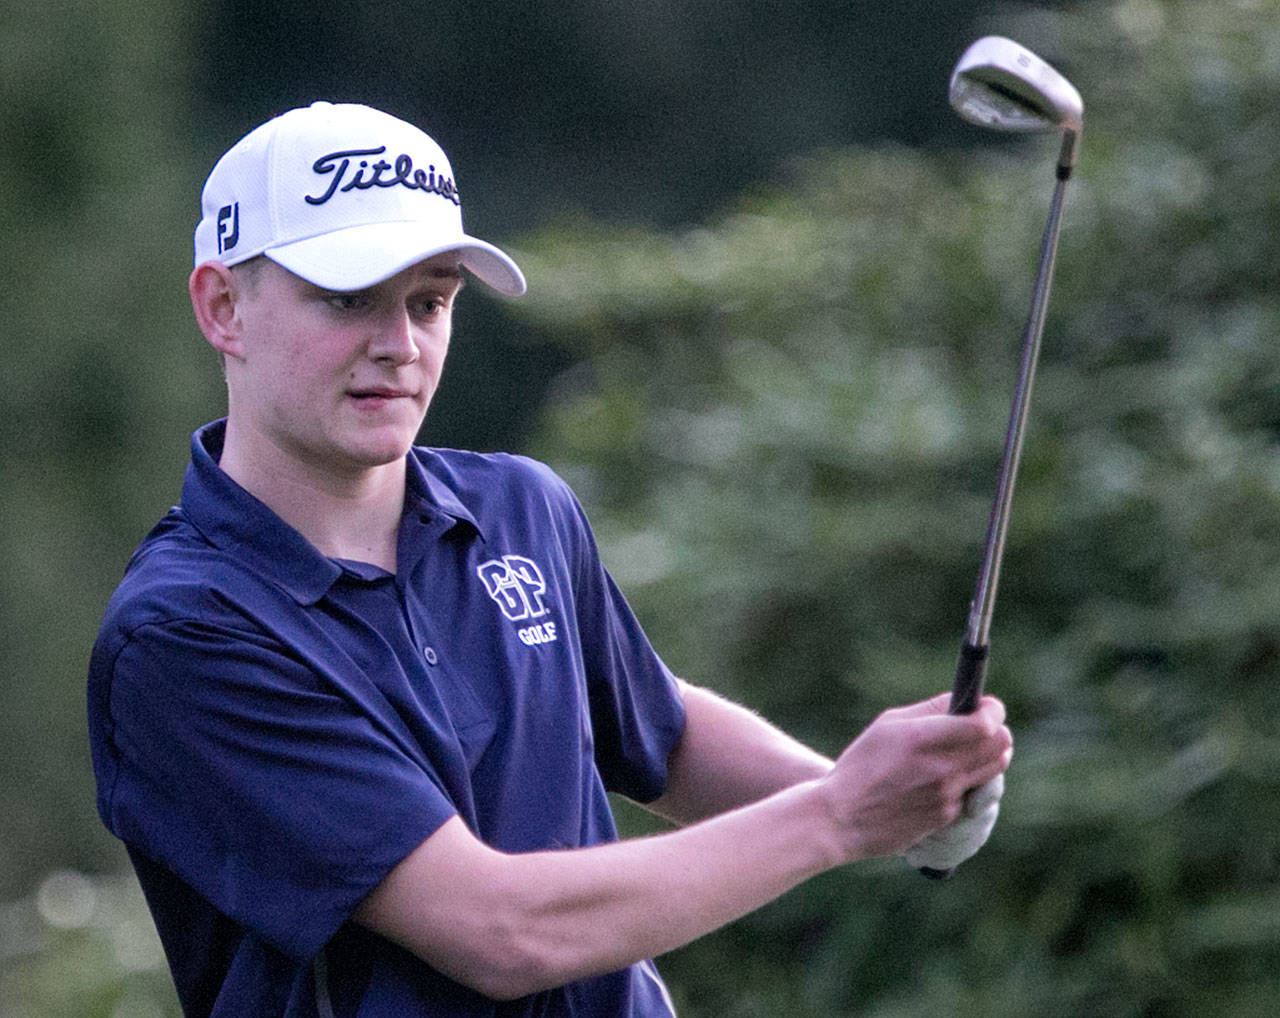 Glacier Peak's Tyler Spalti was one of 10 golfers from Wesco 4A who competed in the boys state tournament last season. All 10 are back this season. (Kevin Clark / The Daily Herald)